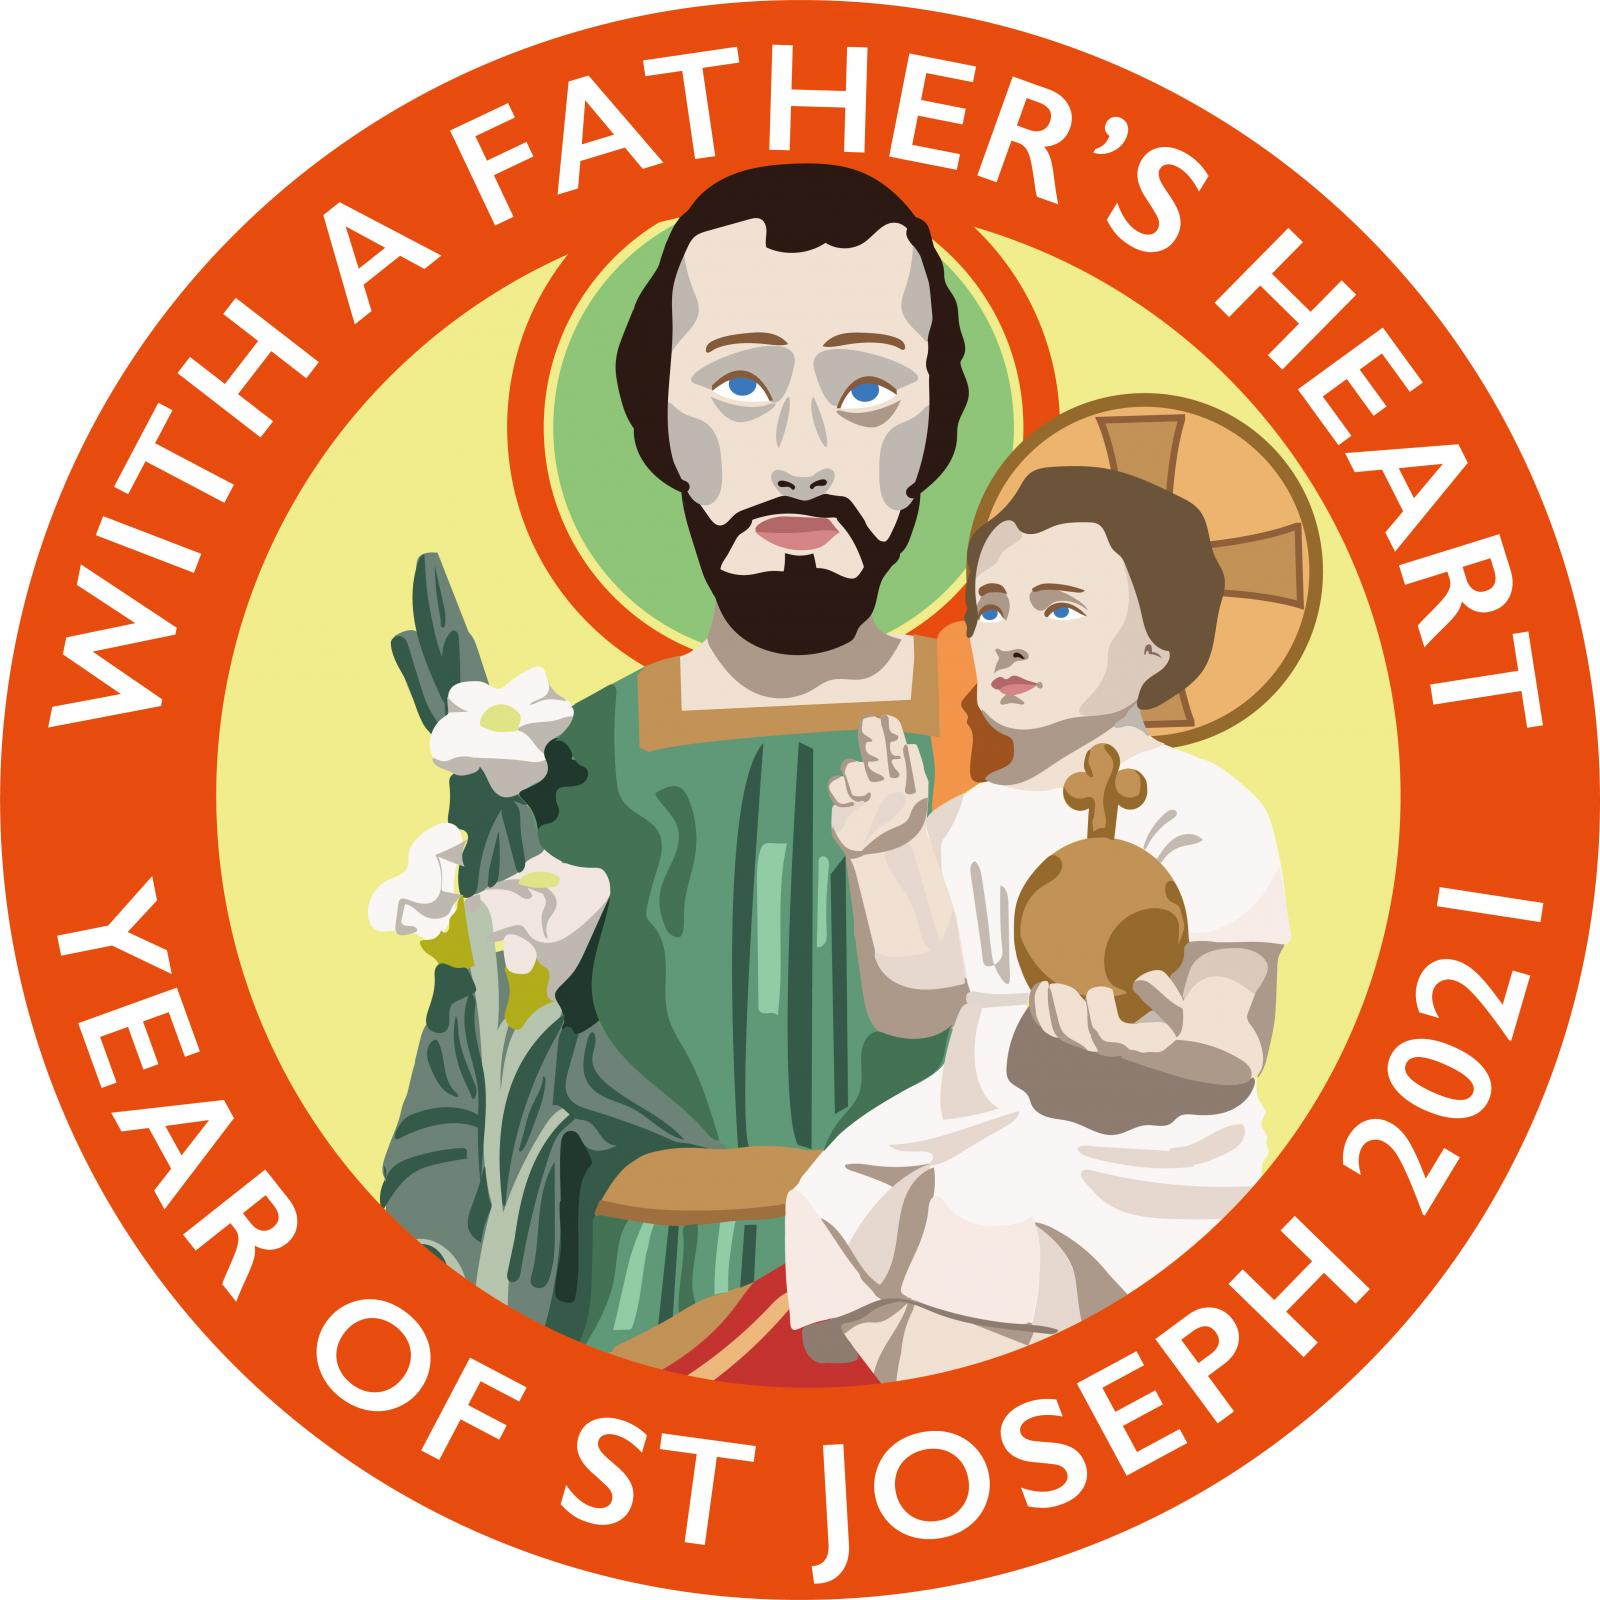 THE YEAR OF SAINT JOSEPH - Diocese of Westminster